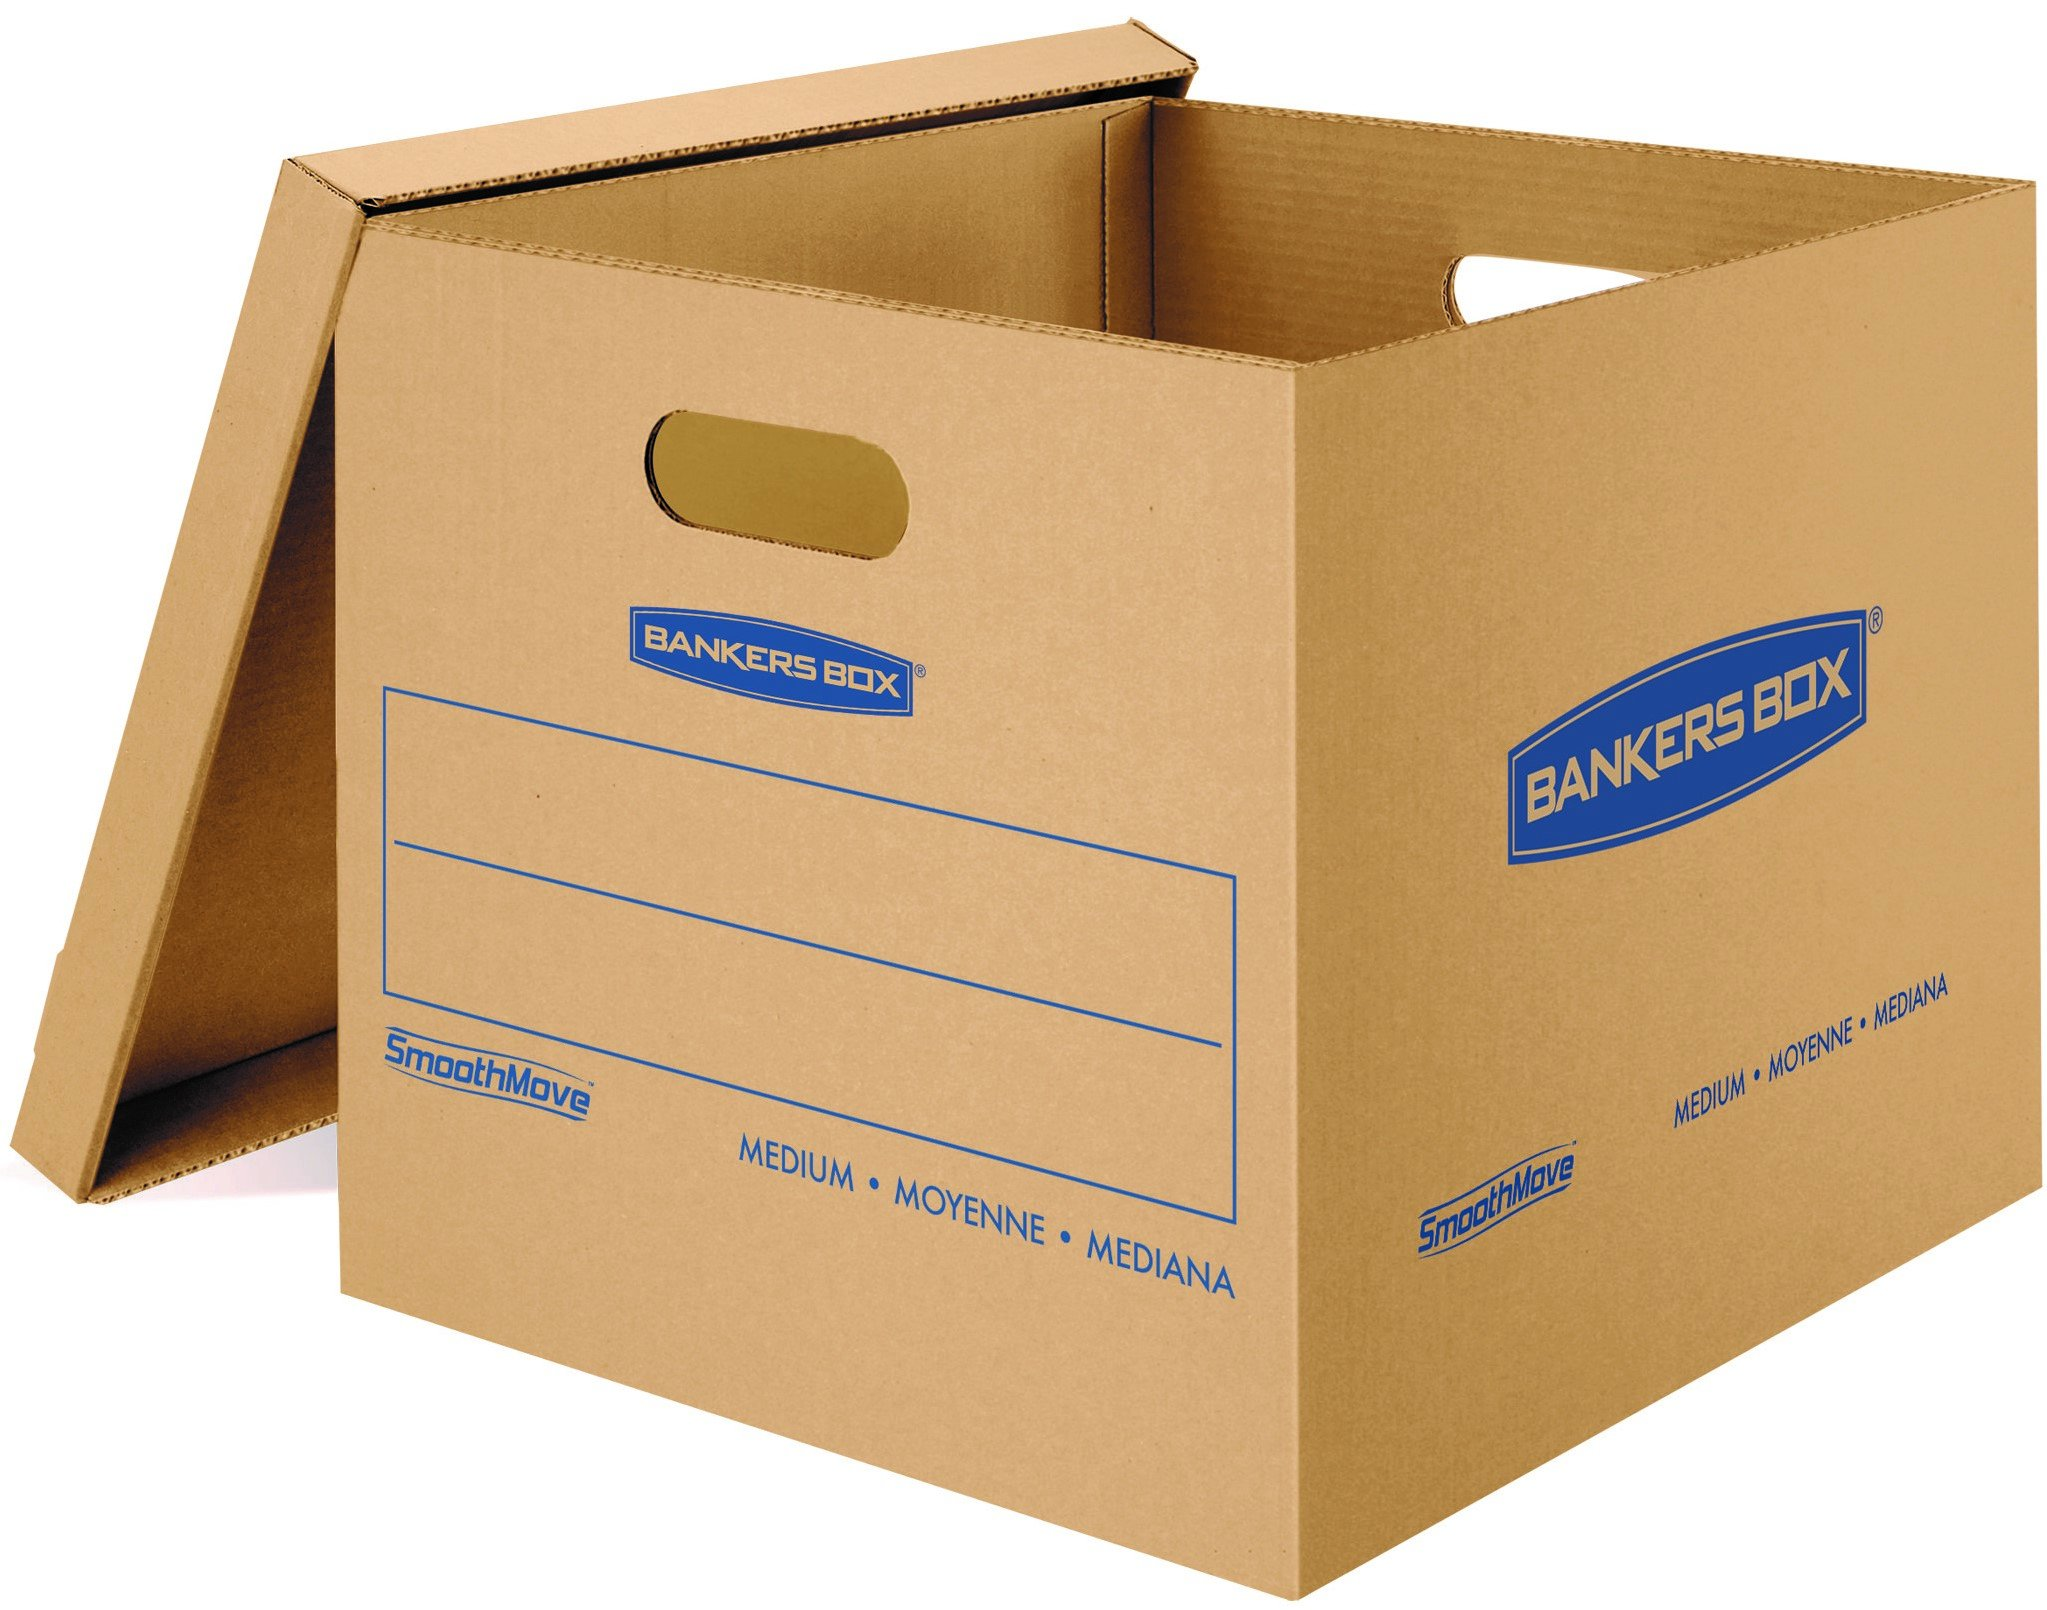 Bankers Box SmoothMove Classic Moving Boxes, Tape-Free Assembly, Easy Carry Handles, Medium, 18 x 15 x 14 Inches, 10 Pack (7717204)